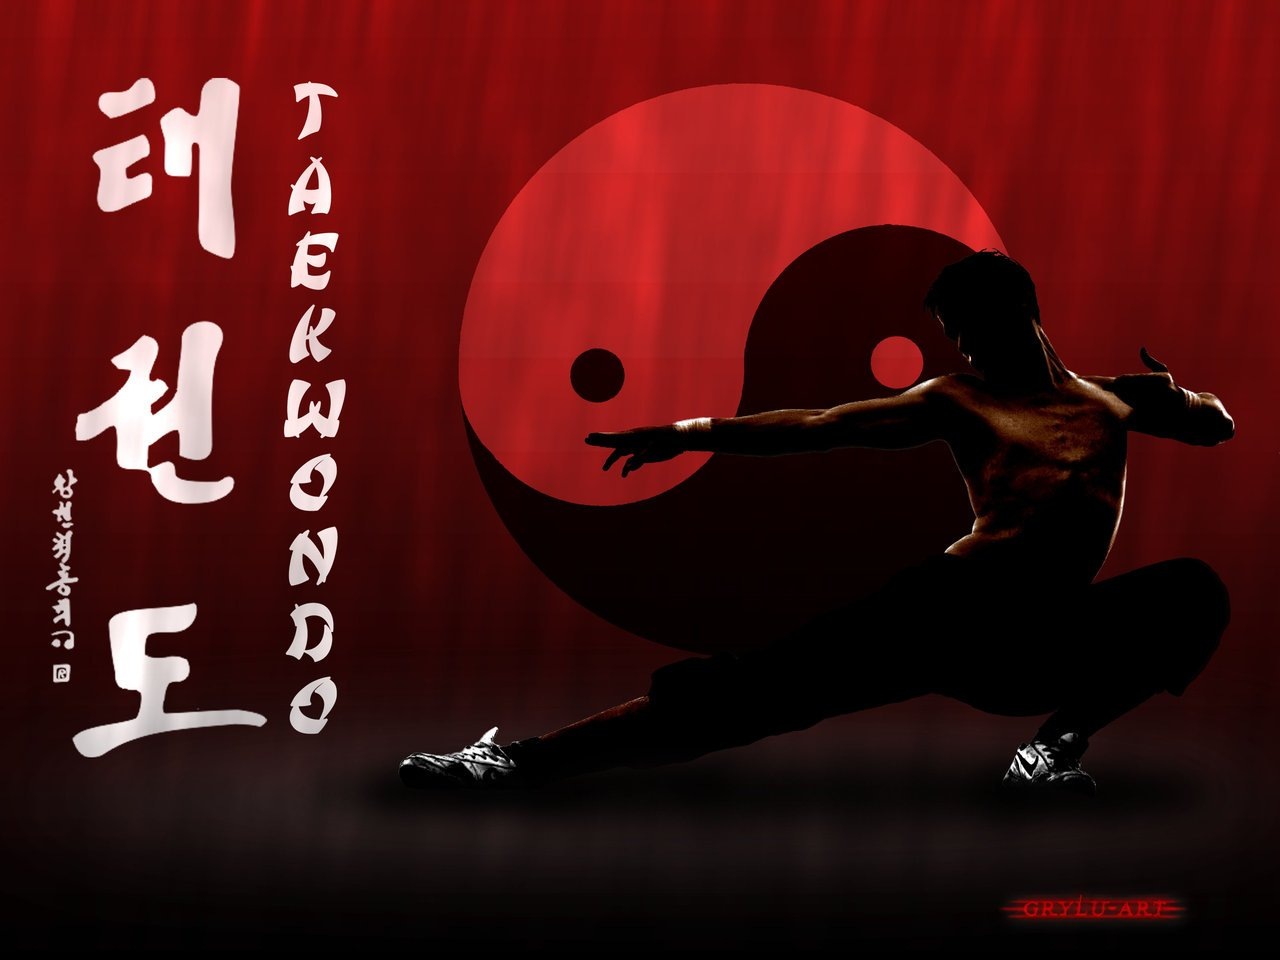 download martial arts taekwondo by grylu3 [1280x960] for your 1280x960